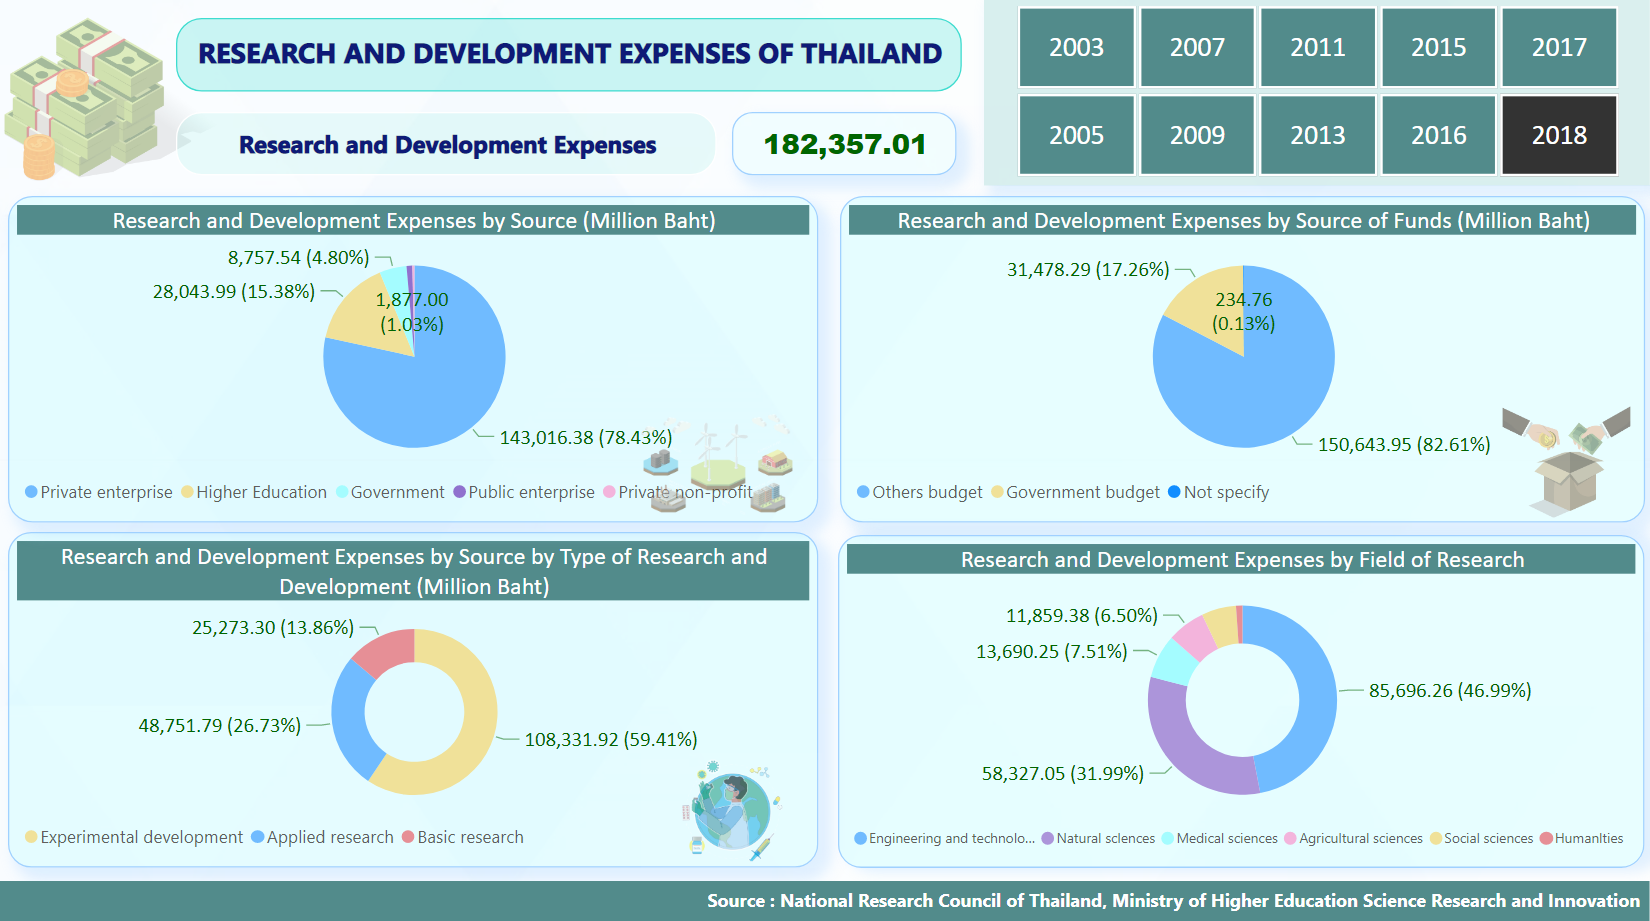 RESEARCH AND DEVELOPMENT EXPENSES OF THAILAND